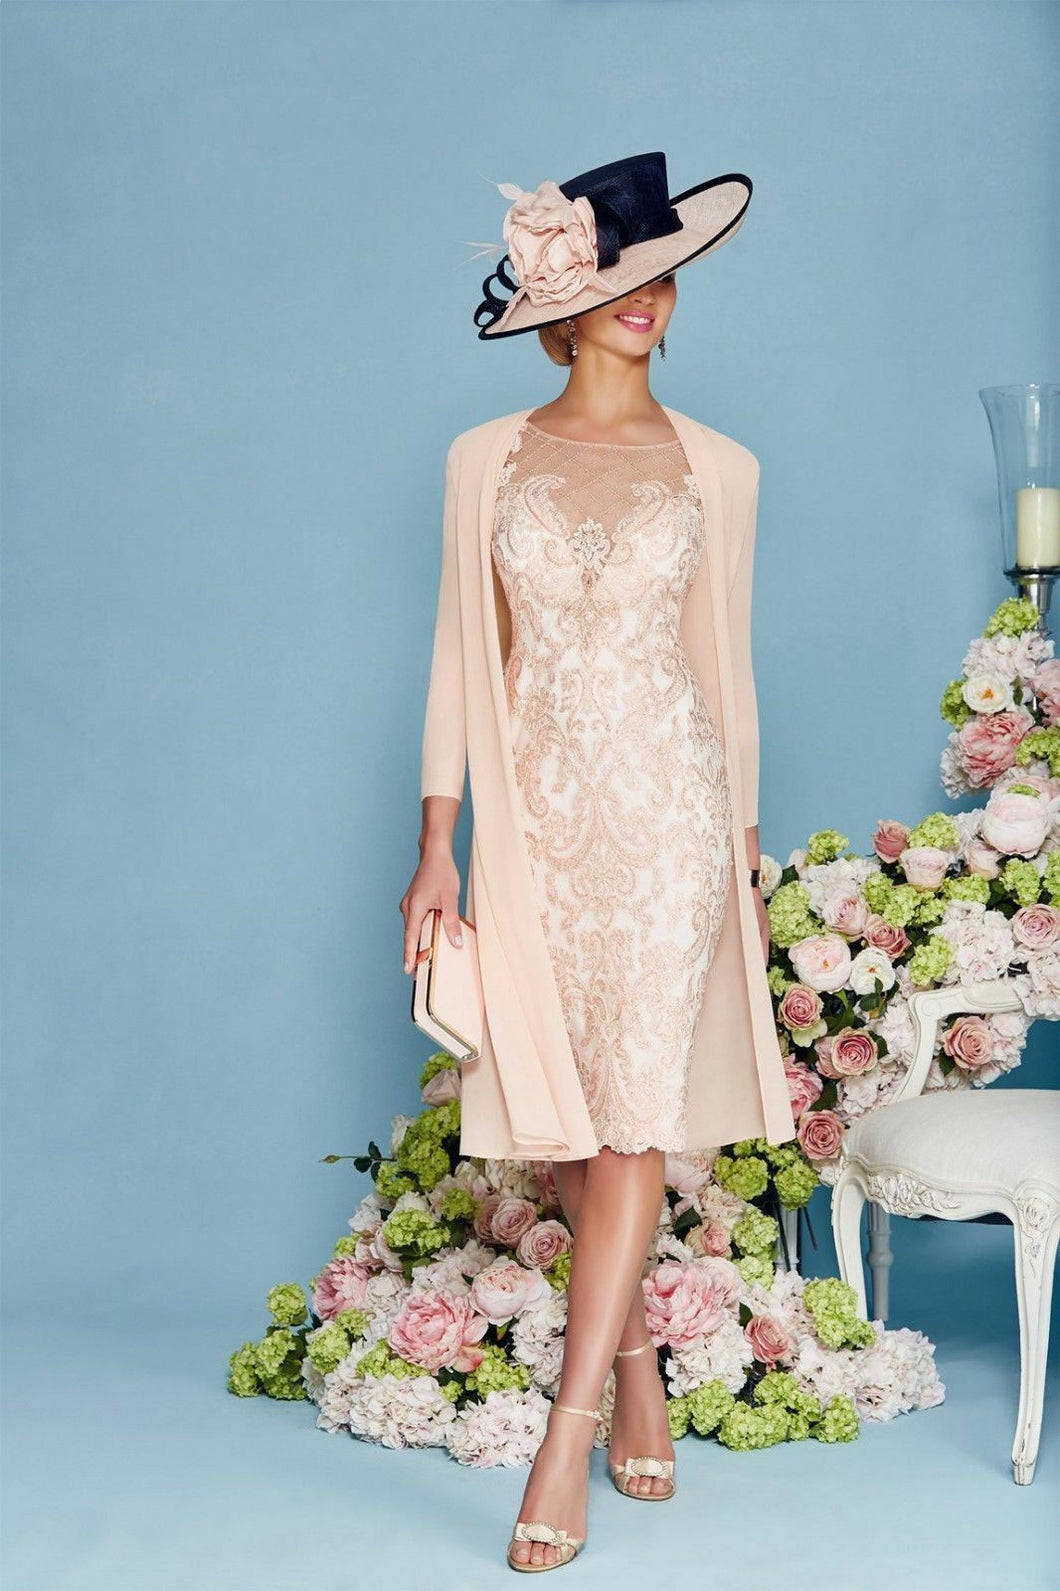 3/4 Sleeves Sheath/Column Chiffon Lace Mother of the Bride Dresses ( Jacket included)